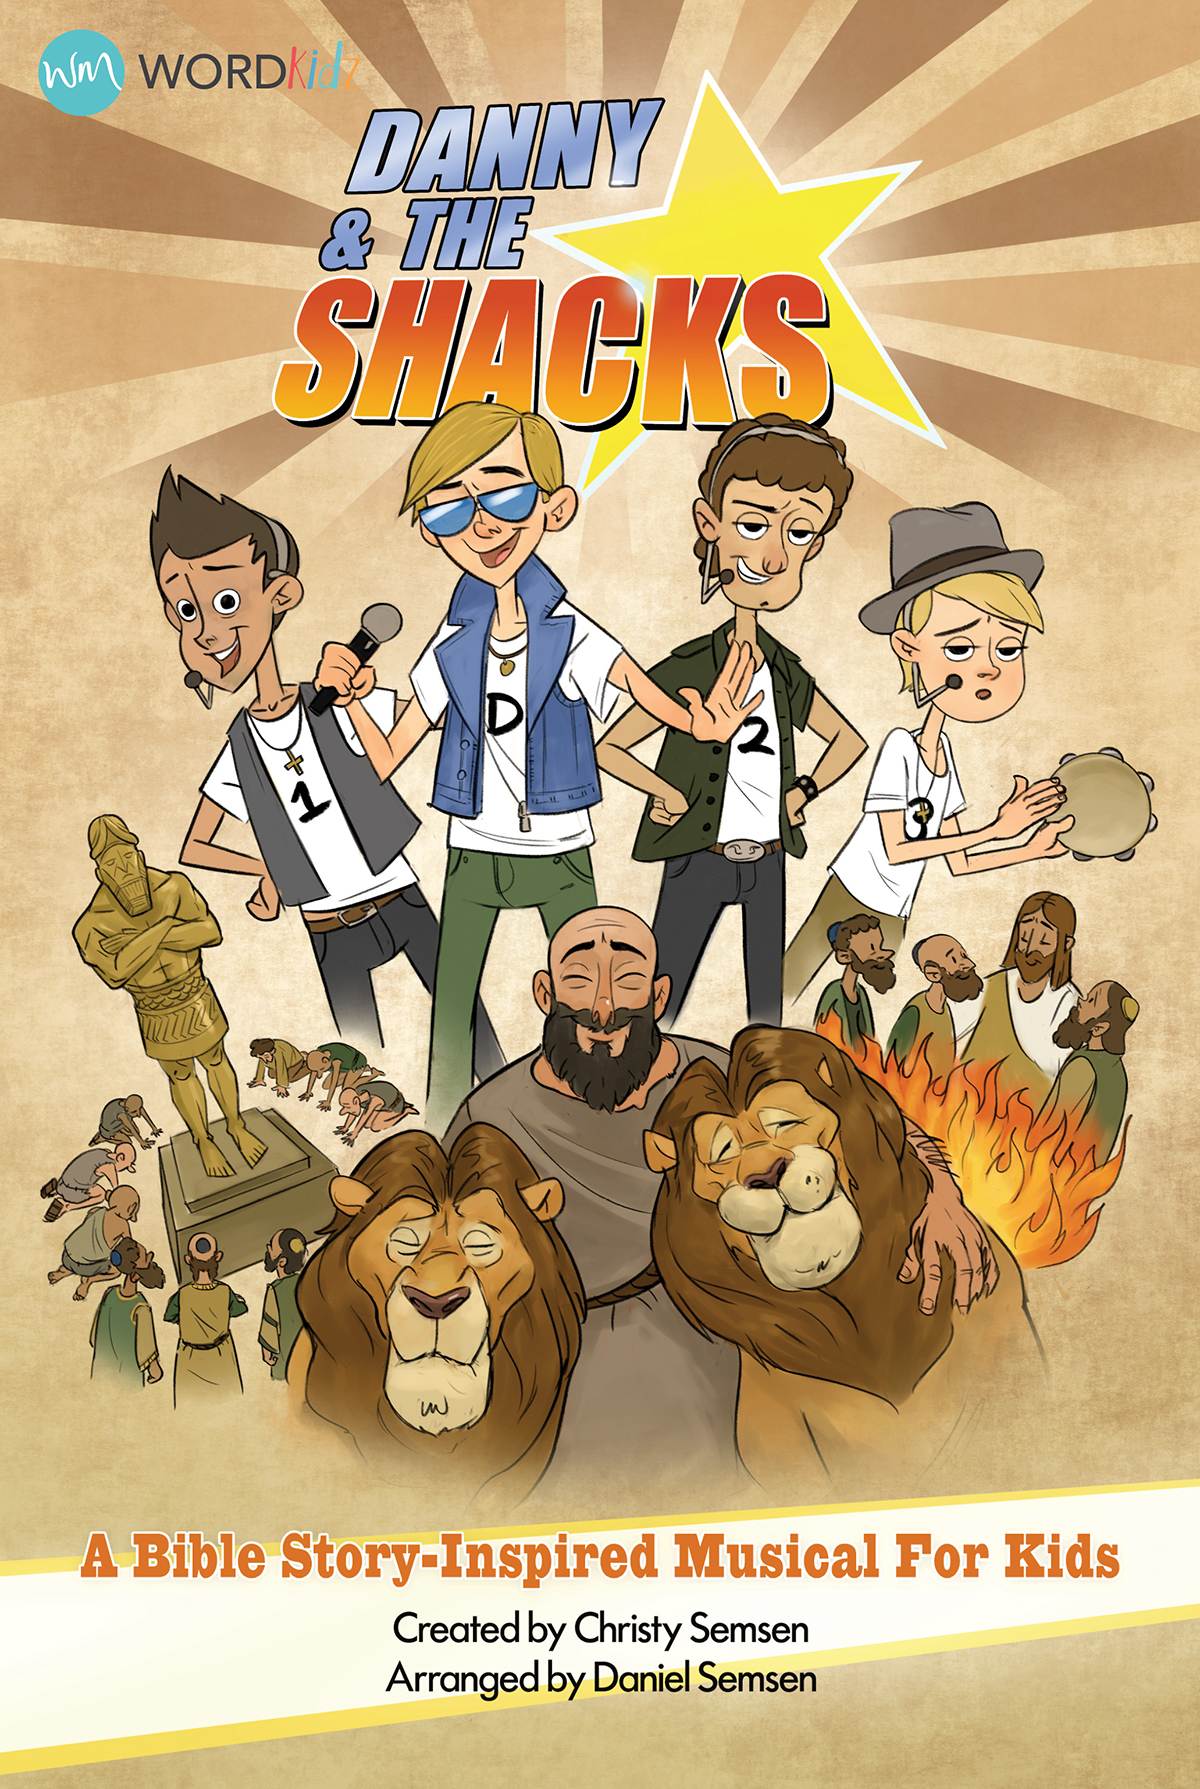 Danny & the Shacks